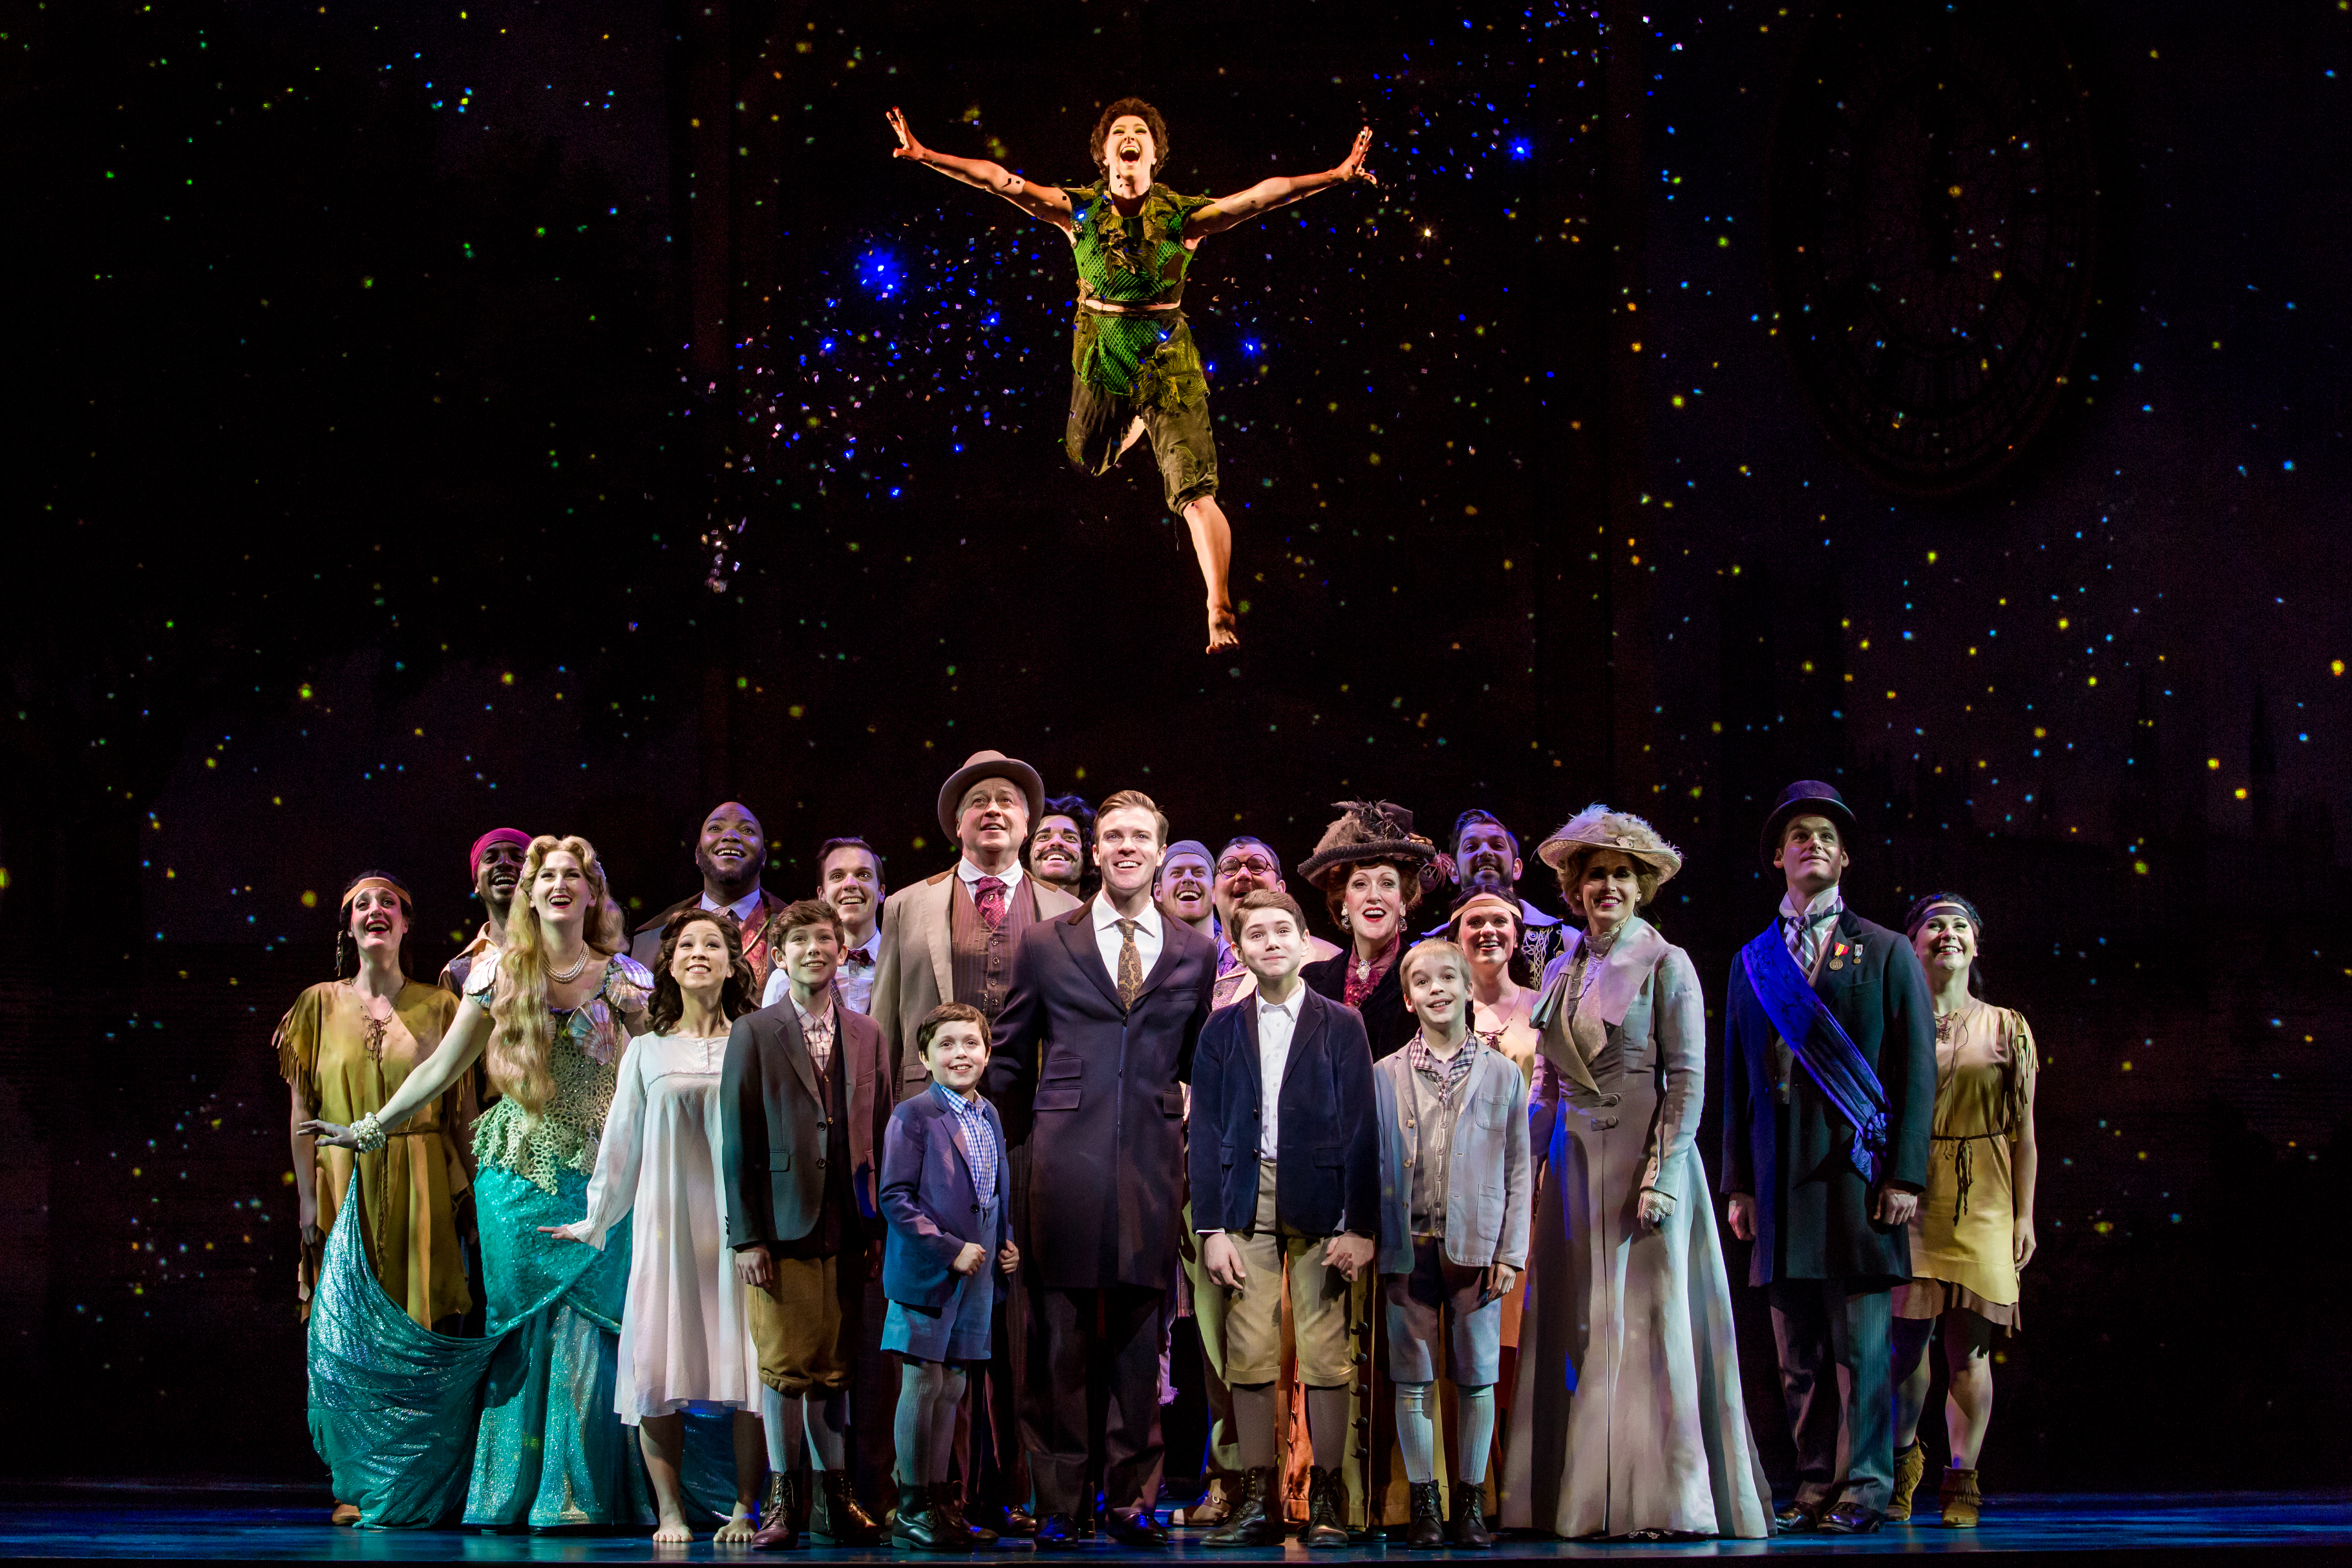 BWW Review: 'FINDING NEVERLAND' is a Magical Journey at Hippodrome Theatre